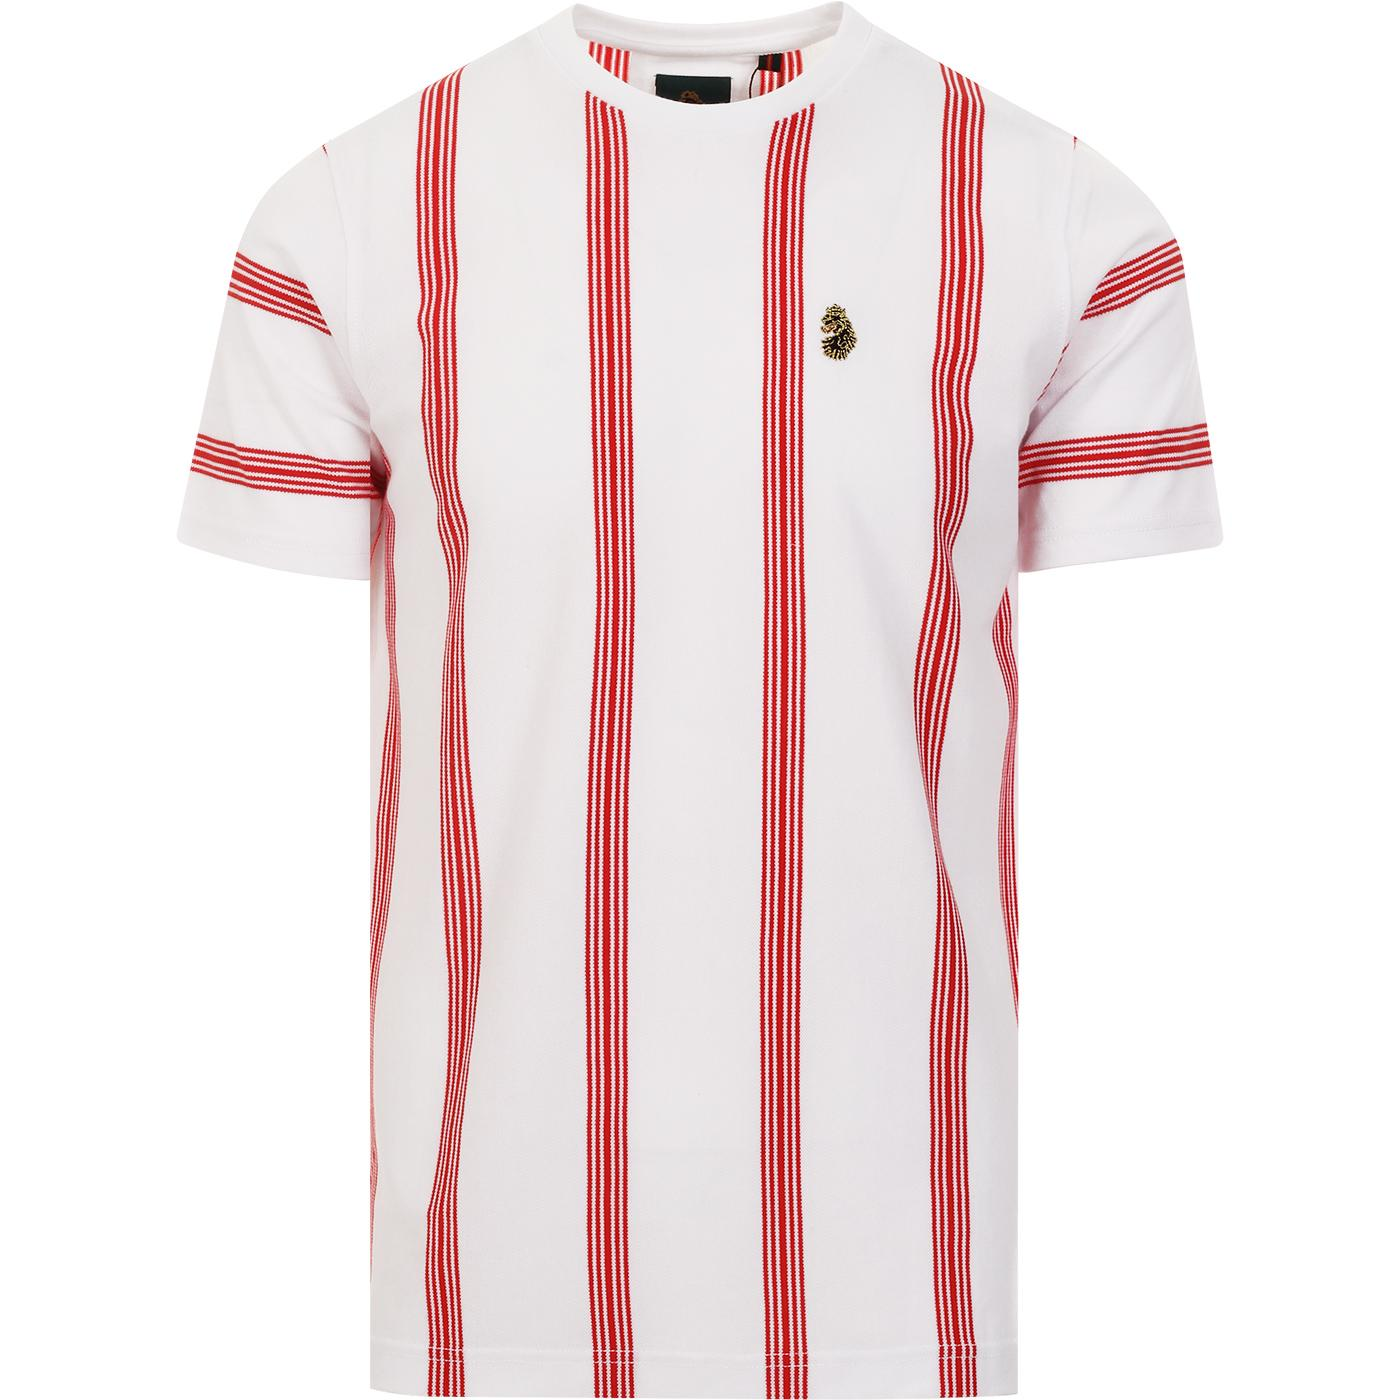 Stafford LUKE Retro Mod Vertical Stripe Tee (W)